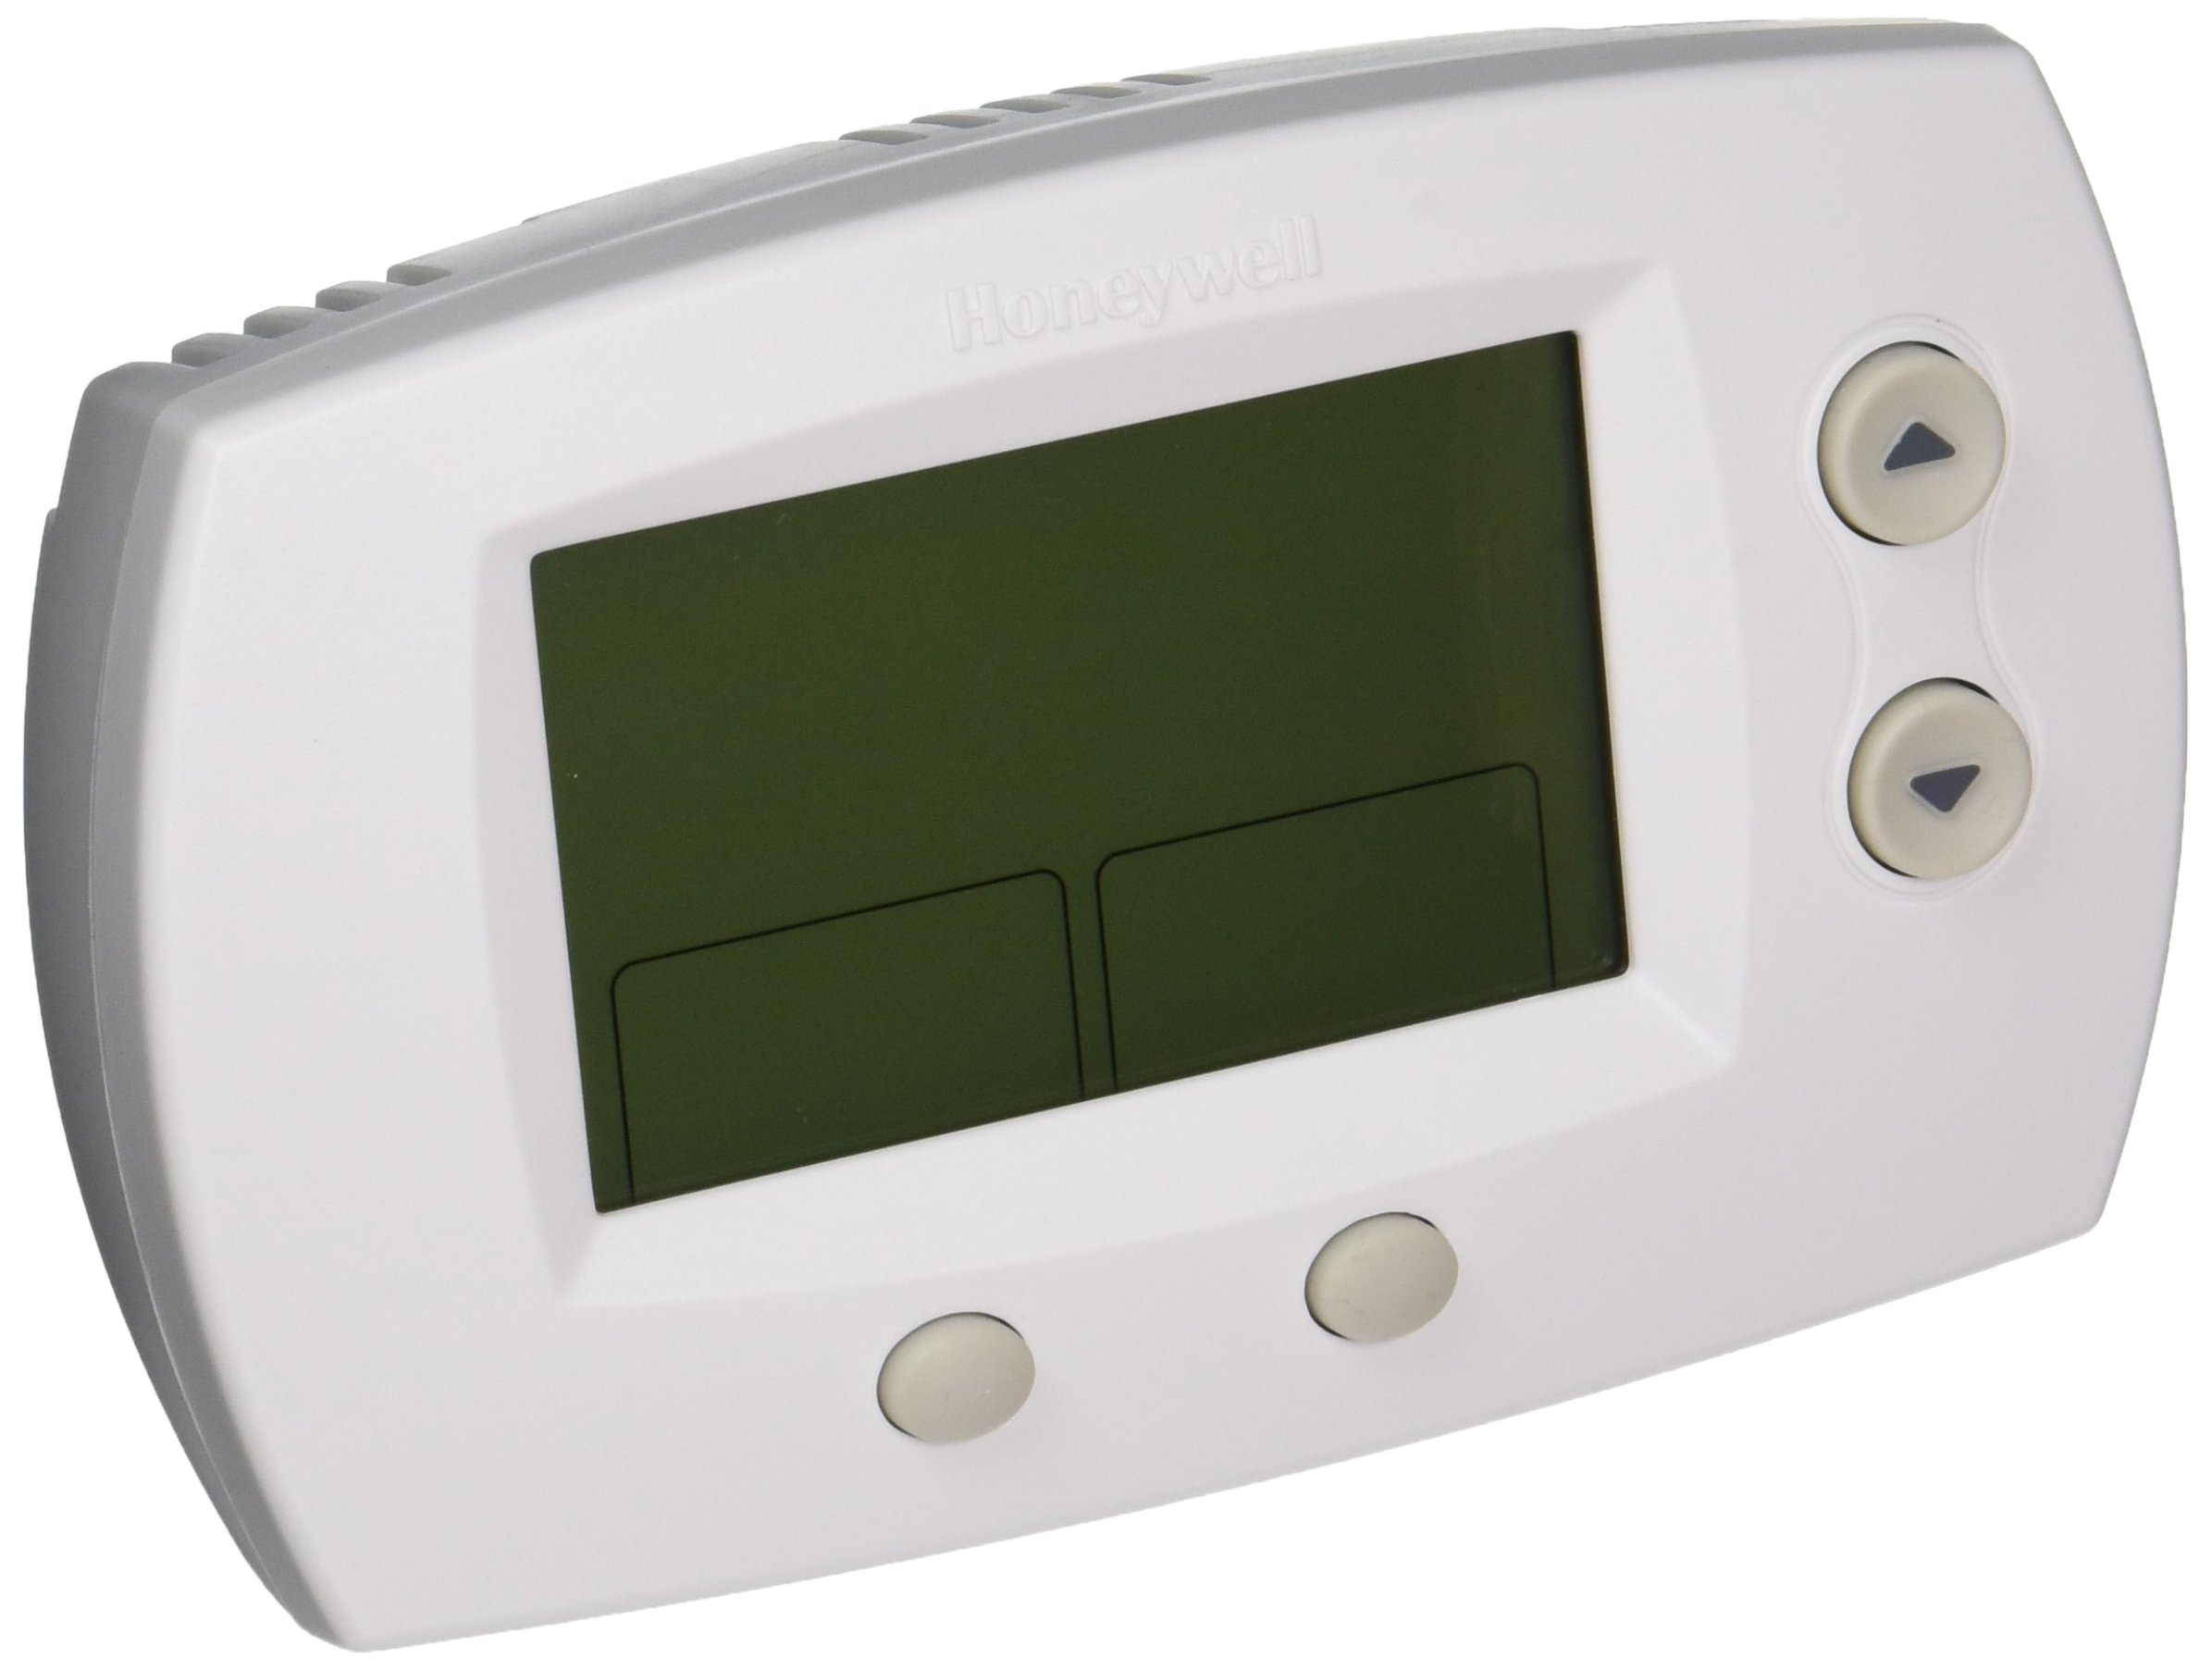 Honeywell TH5220D1029 Focuspro 5000 Non-Programmable 2 Heat and 2 Cooling Thermostat, Large Screen, Multicolored